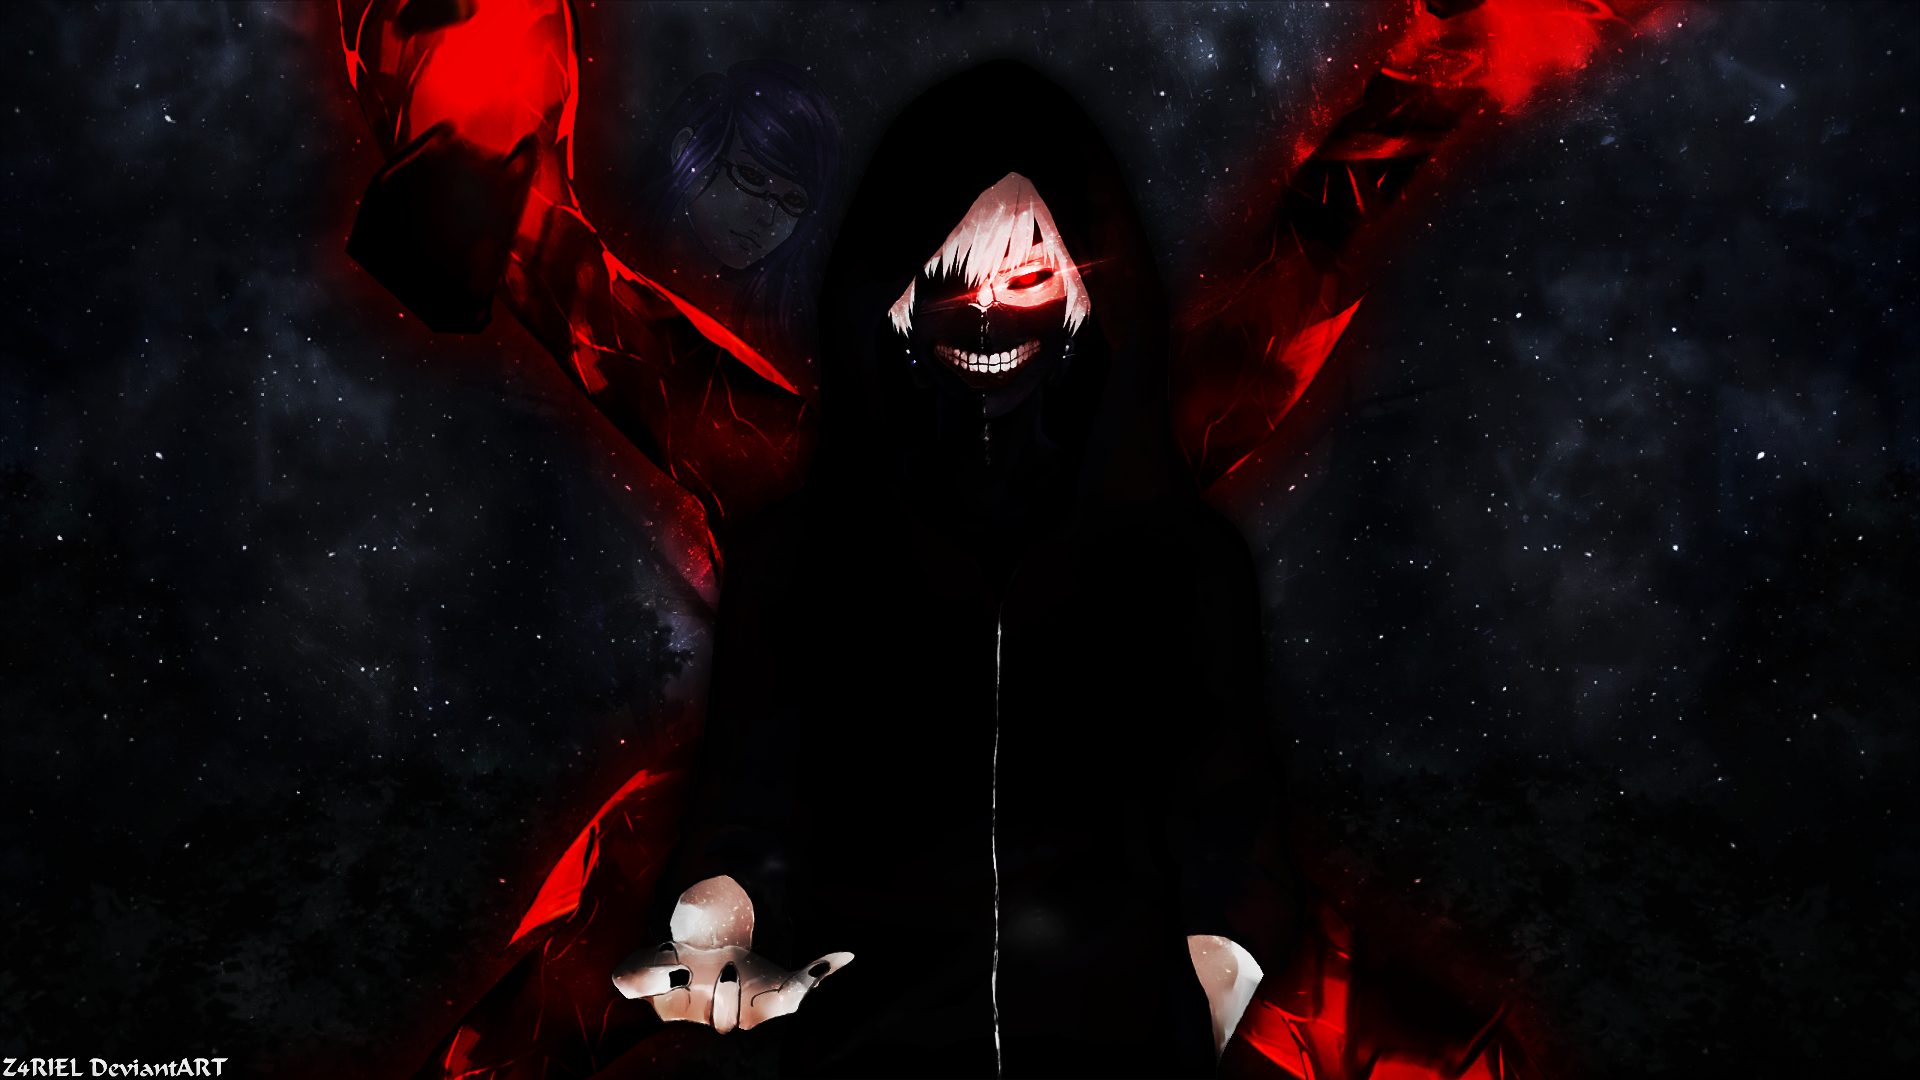 Wallpaper kaneki ken tokyo ghoul by z4riel on deviantart for Deviantart wallpaper